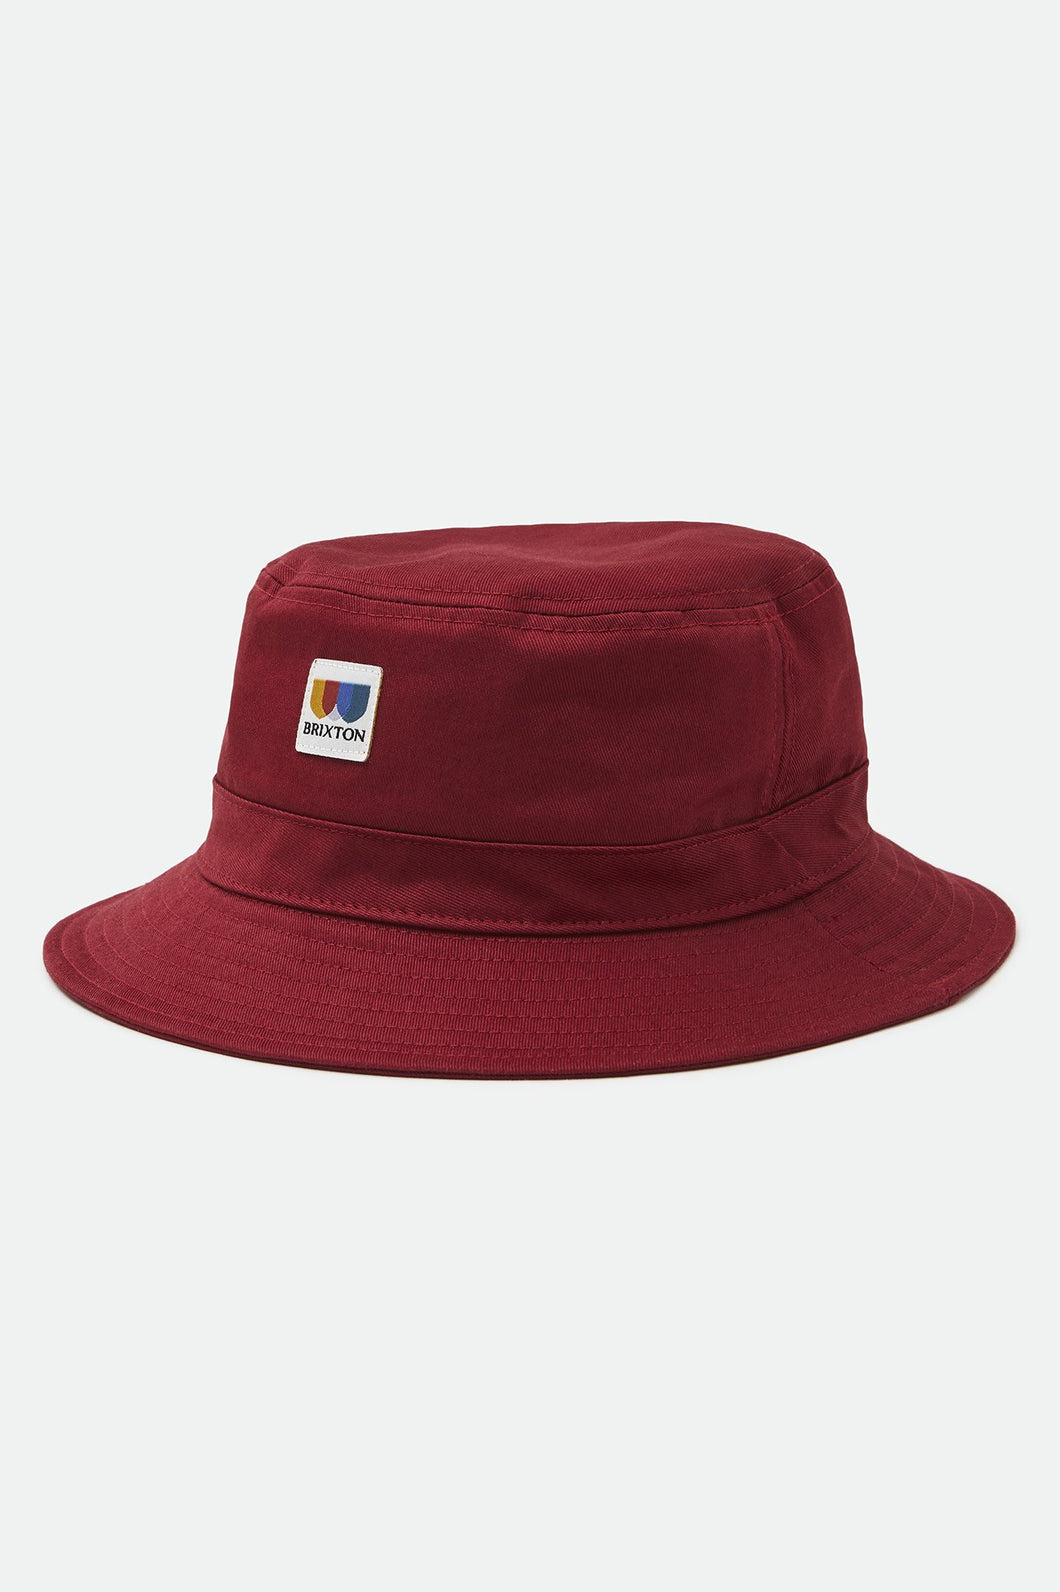 Brixton Alton Packable Bucket Hat Cowhide